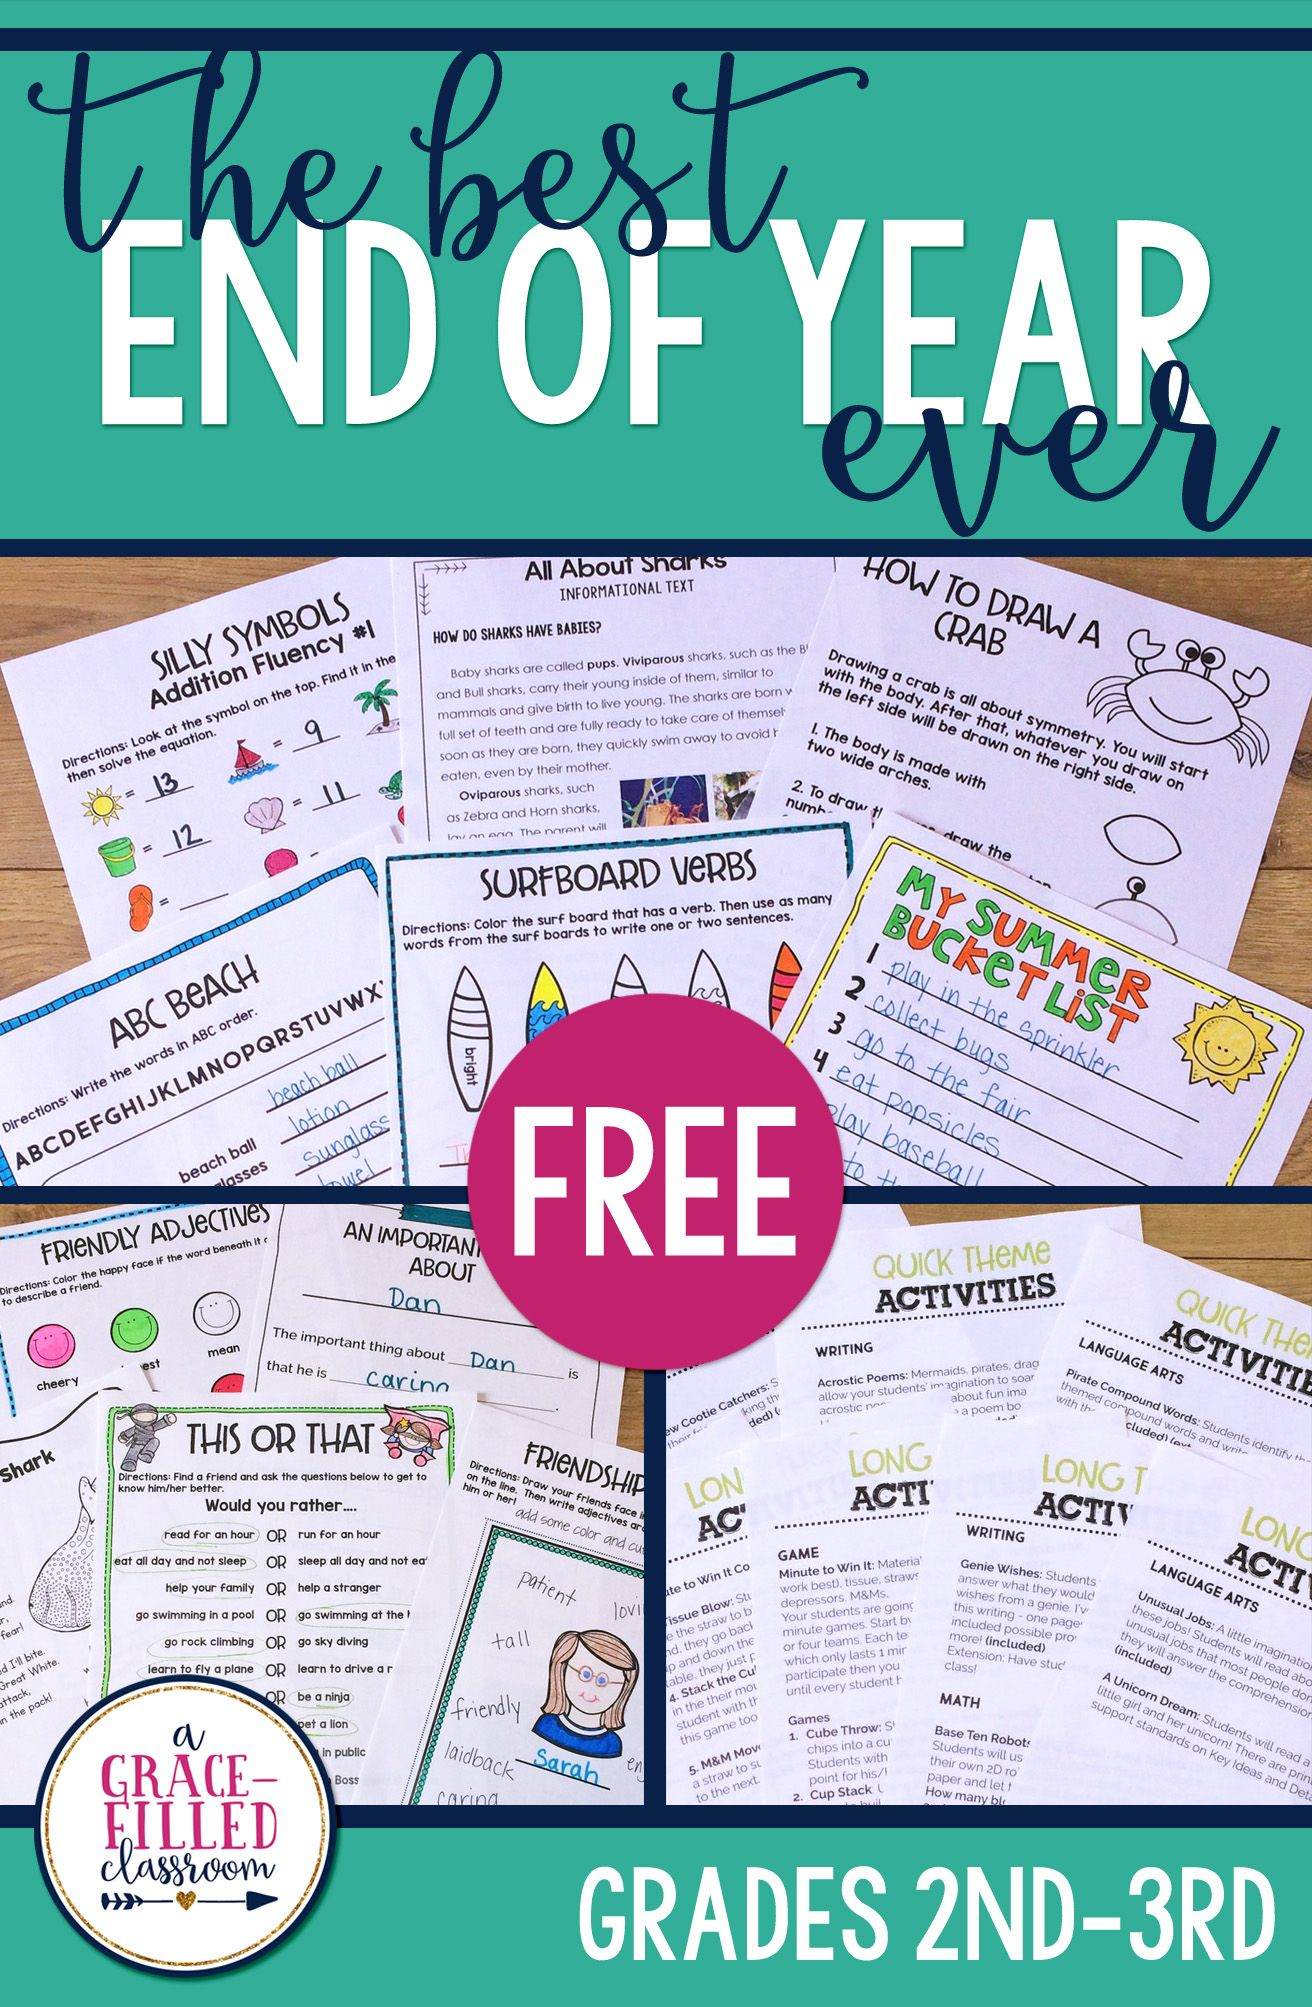 Free End Of Year Ideas Activities And Resources To Have